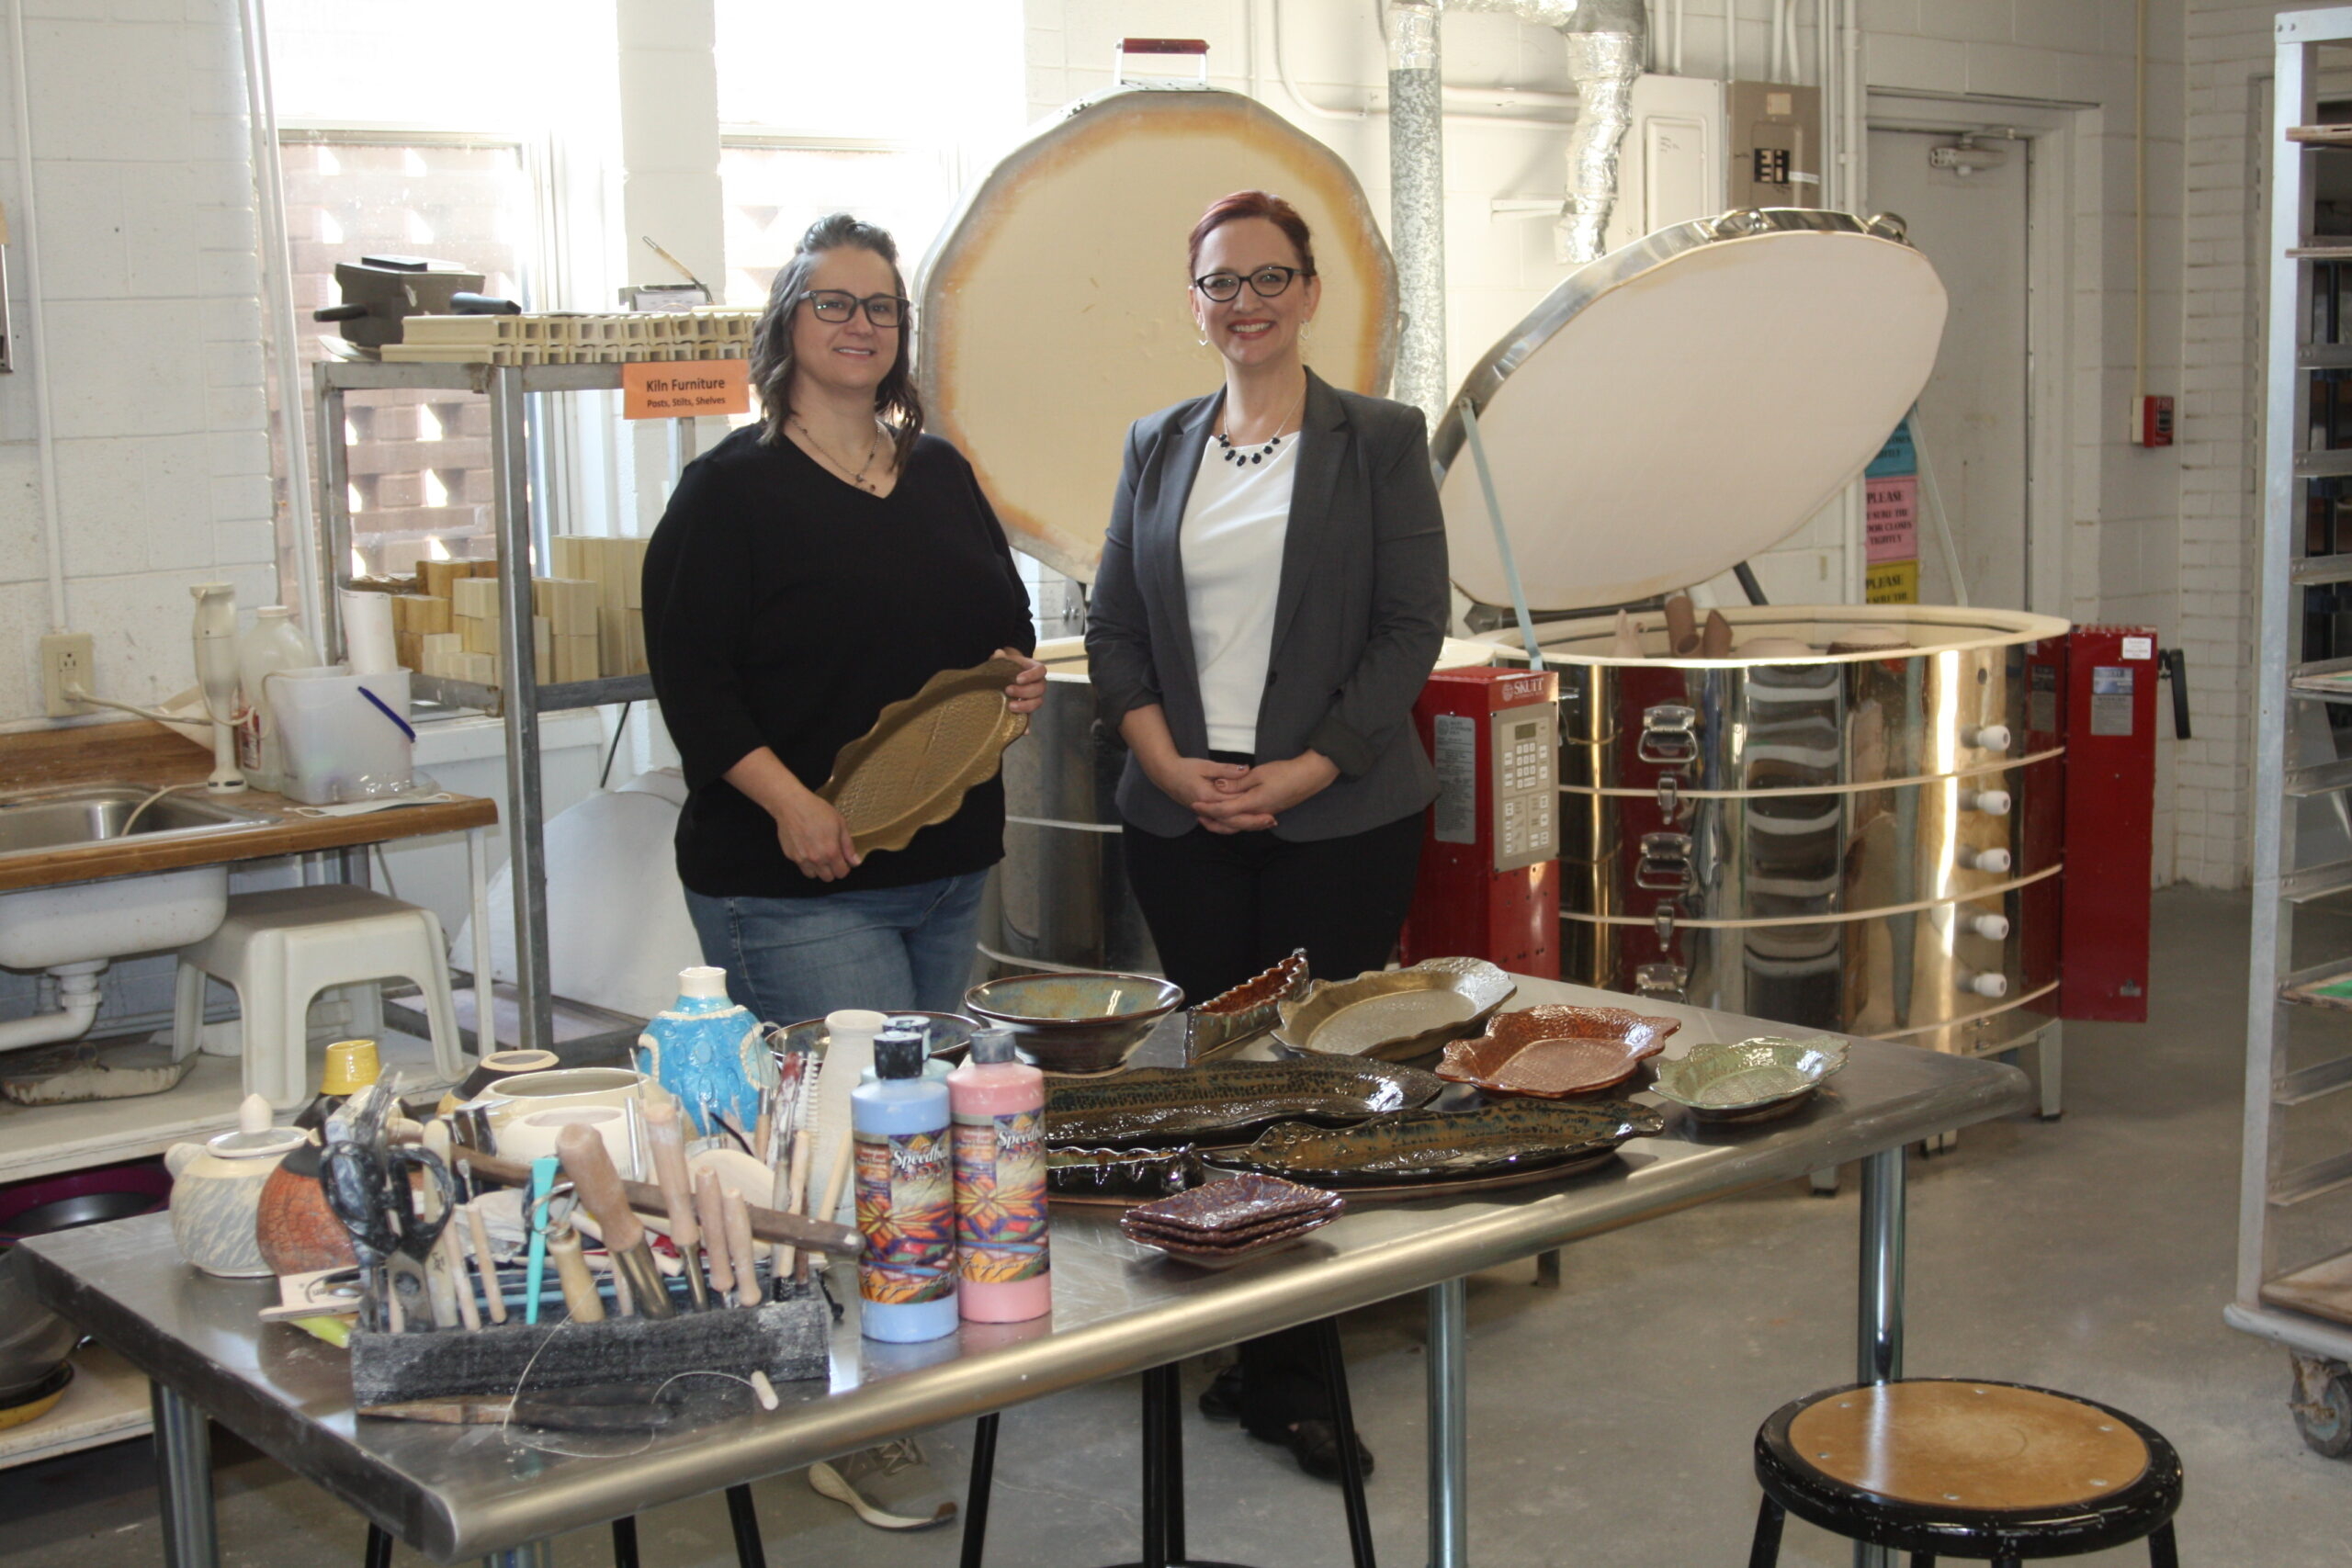 Pictured are (left to right) Jennifer Nolan, DC3 Associate Professor of Art, and Christina Haselhorst, DC3 Foundation Director